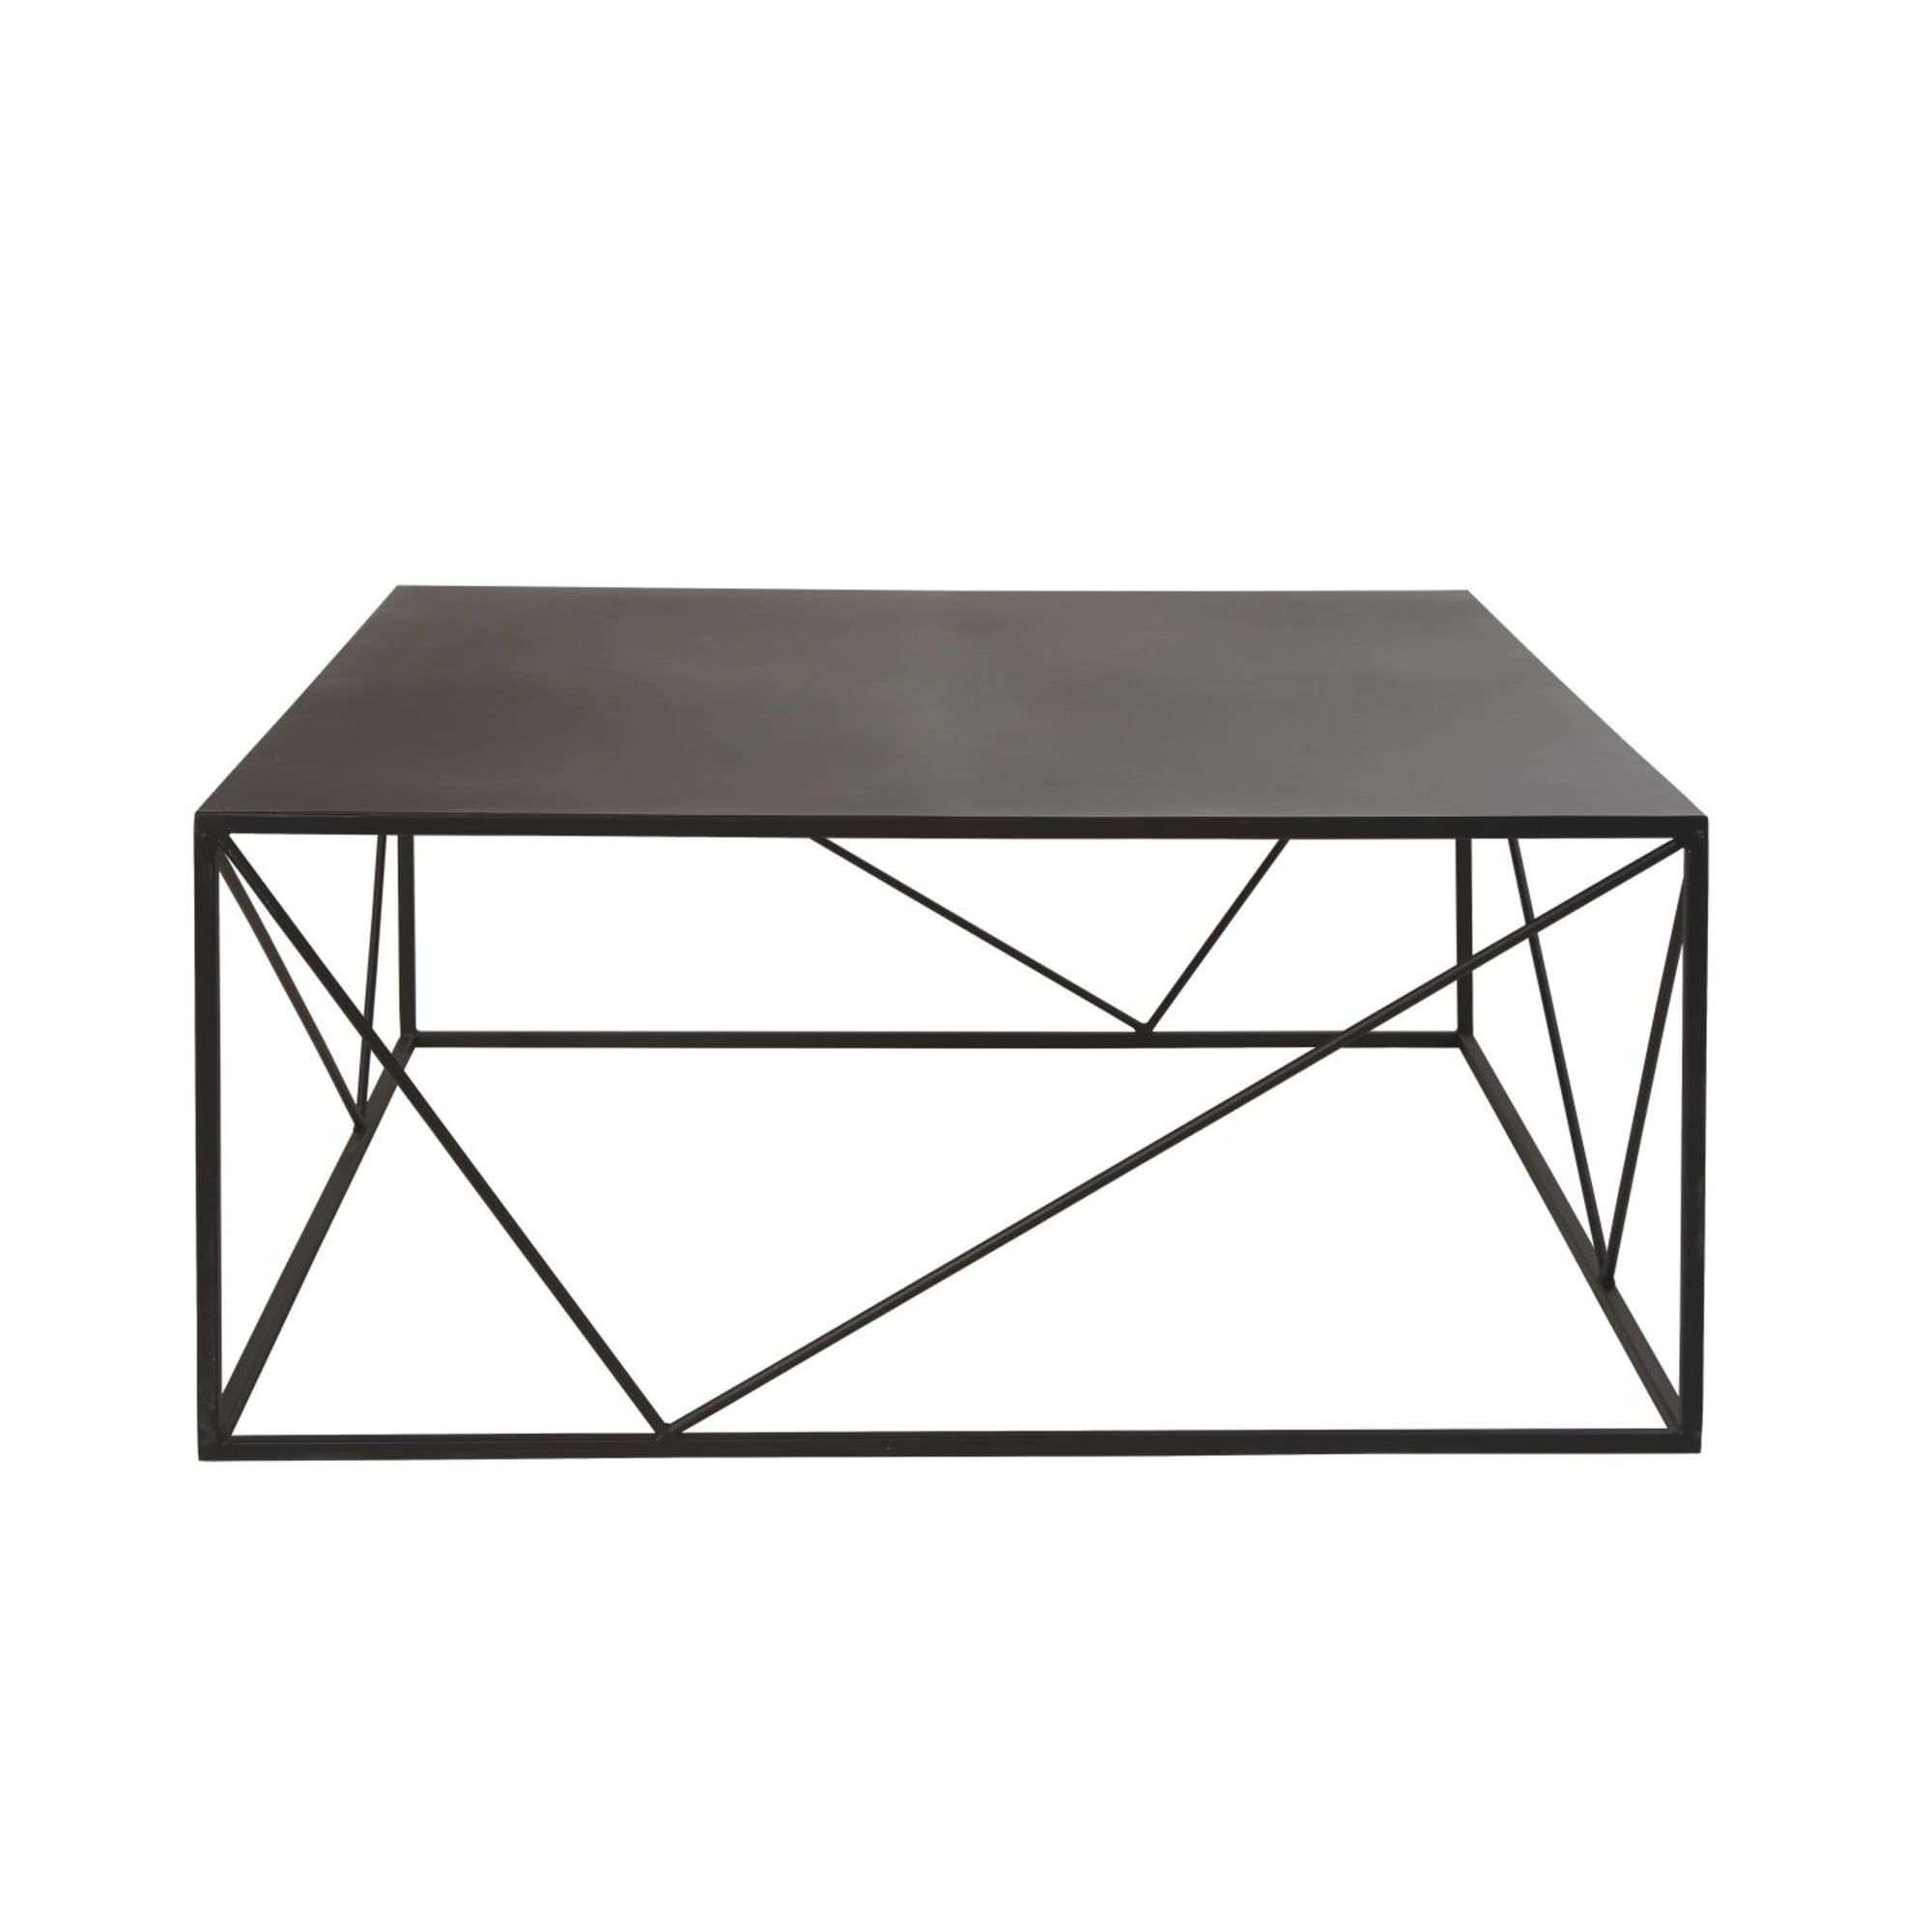 Table Basse Carree En Metal Noir Edwin Coffee Table Square Black Coffee Tables Coffee Table